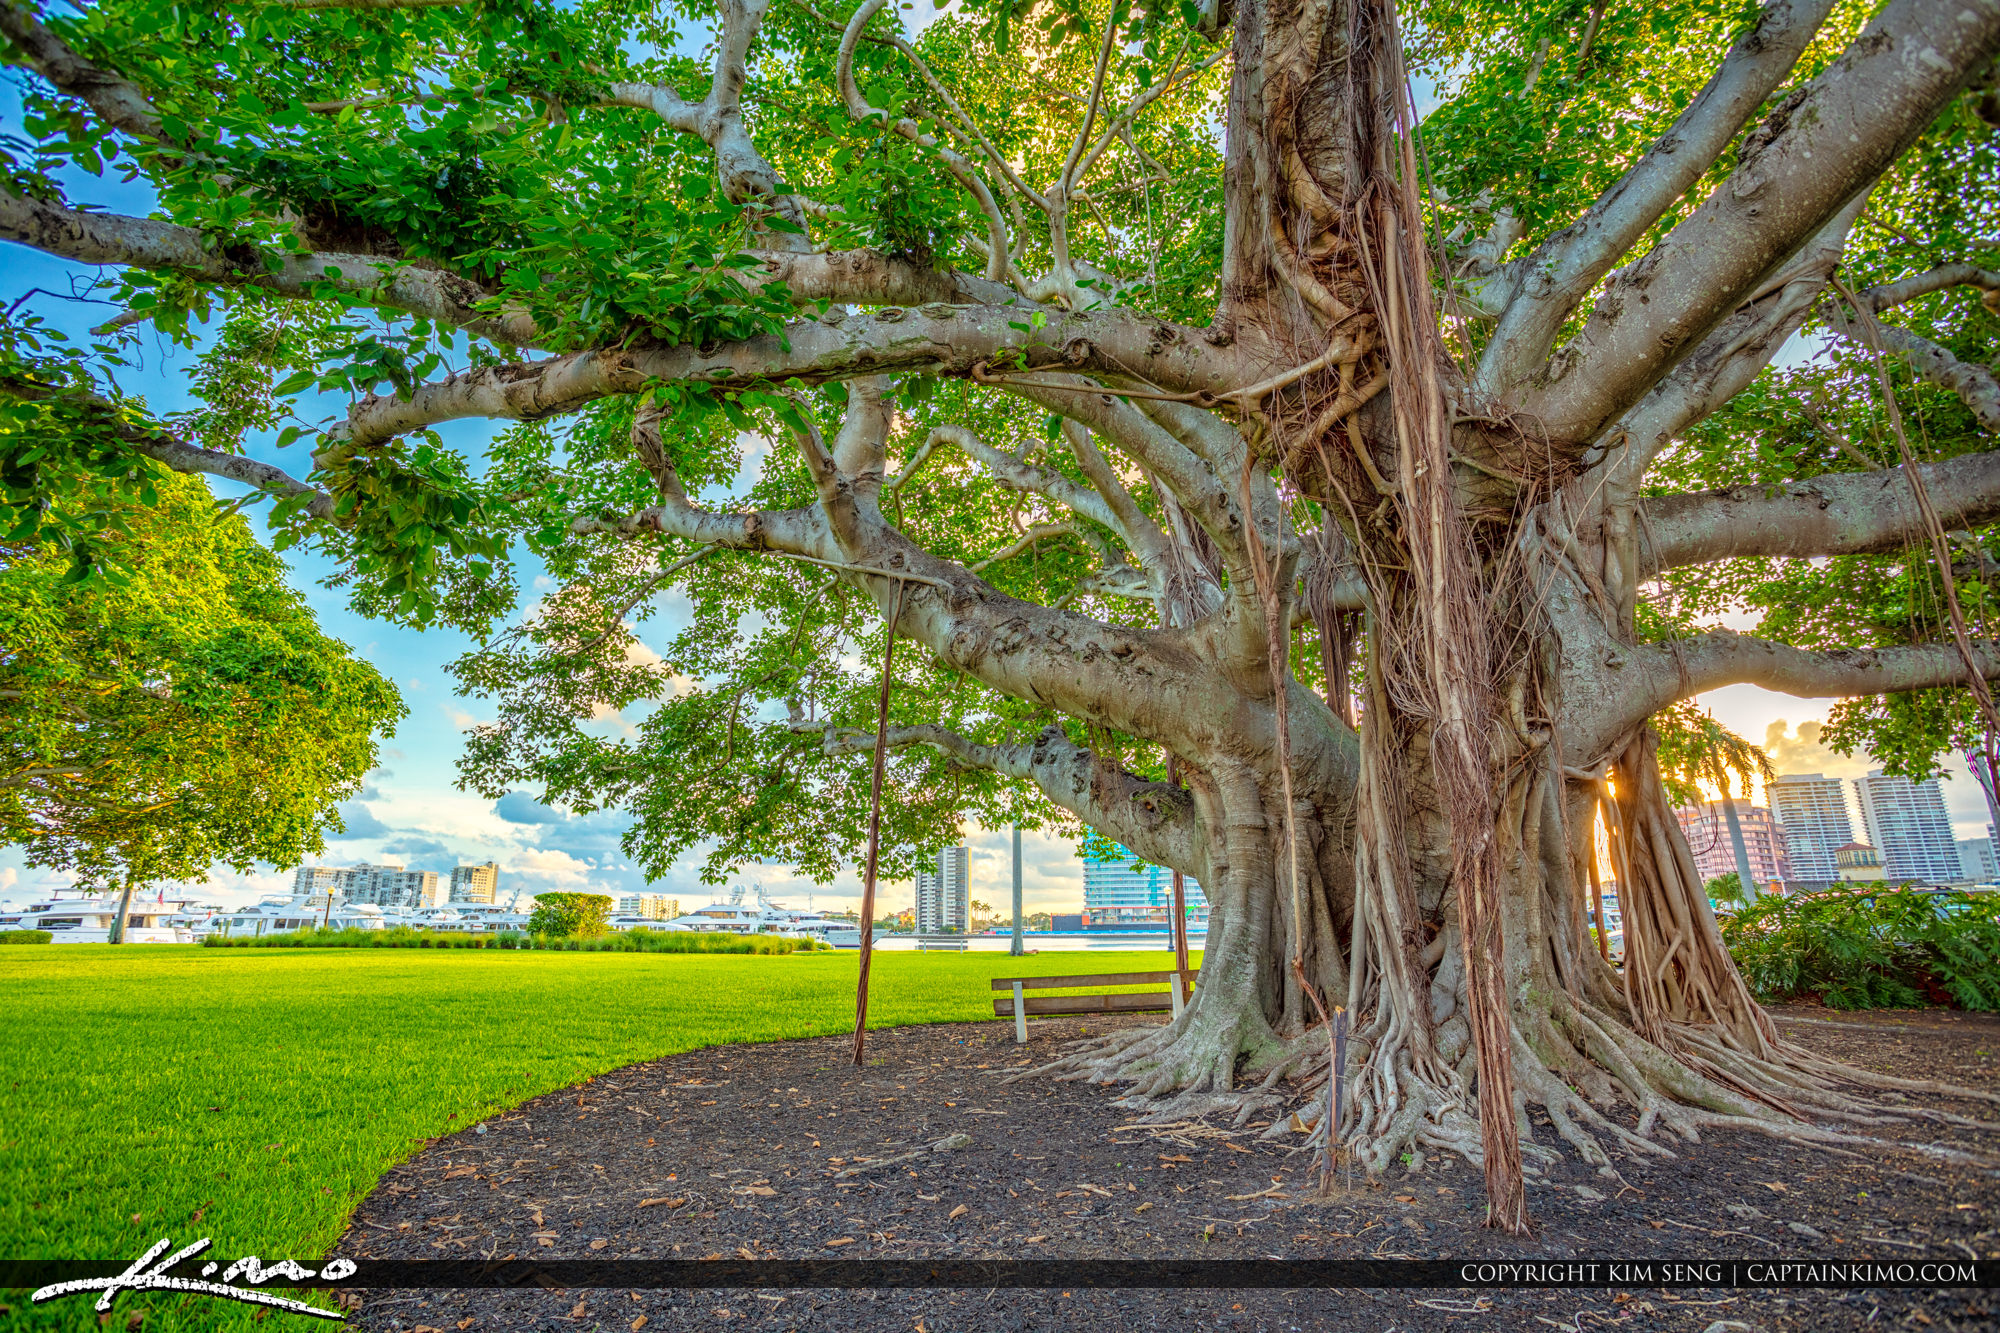 Underneath the Banyan Tree in Palm Beach Island Royal Park Marina